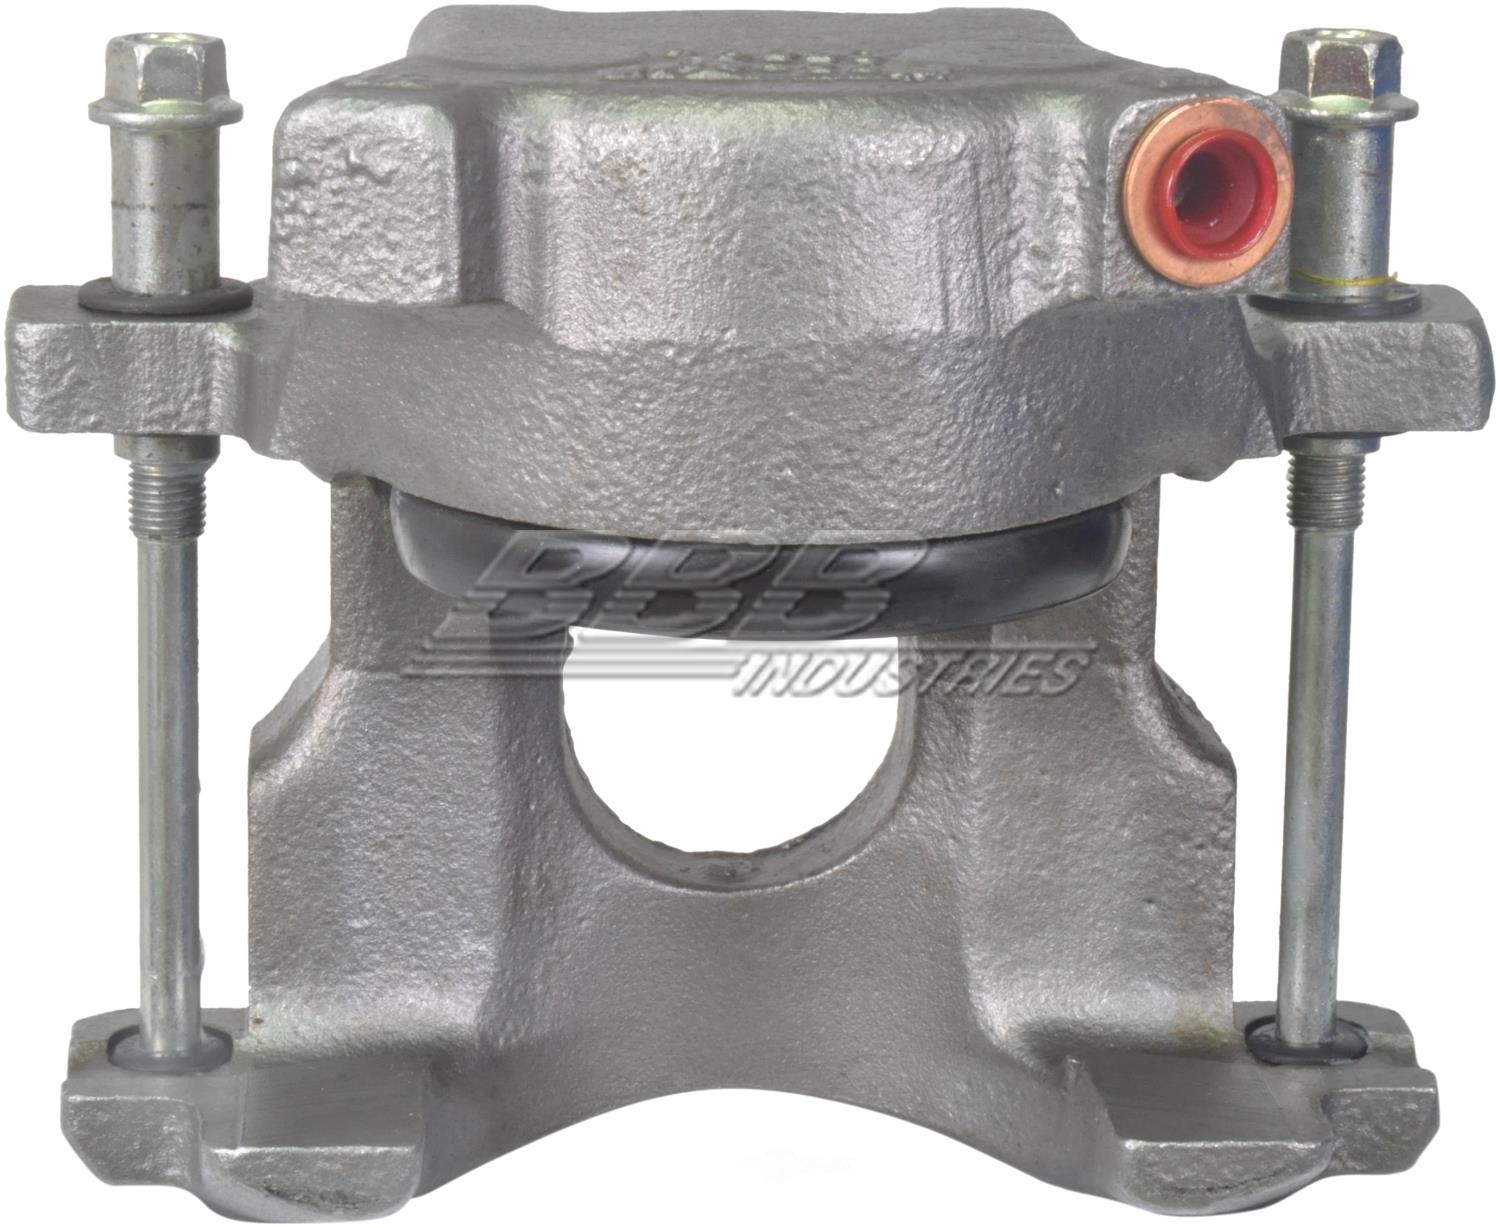 BBB INDUSTRIES - Reman Caliper w/Installation Hardware - BBA 97-17621B